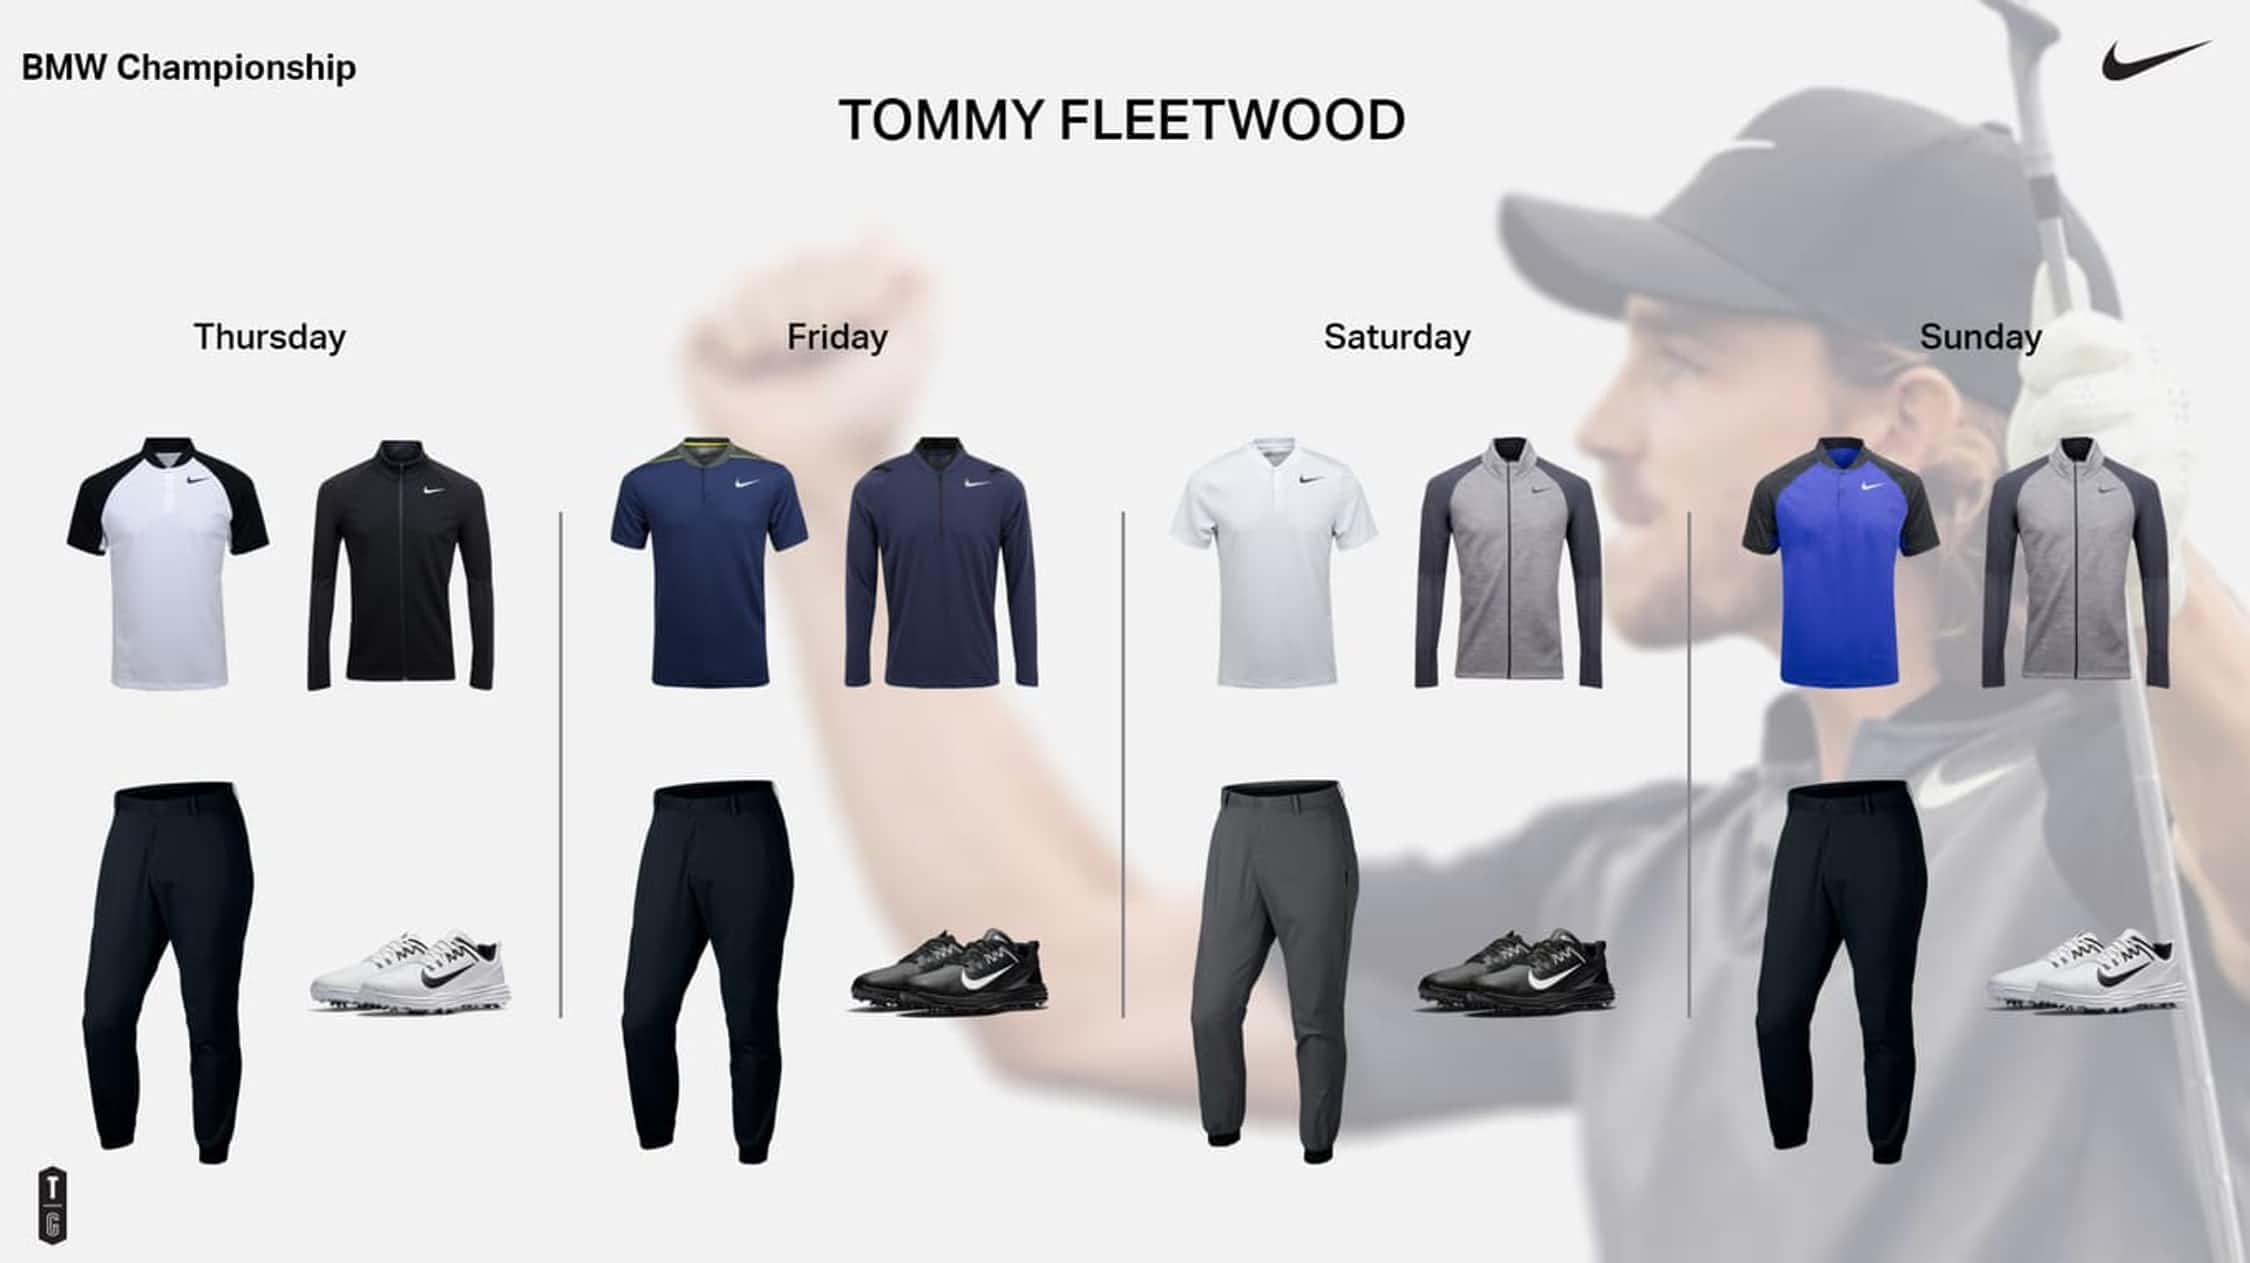 Dressing Tommy Fleetwood The TRENDYGOLF Way